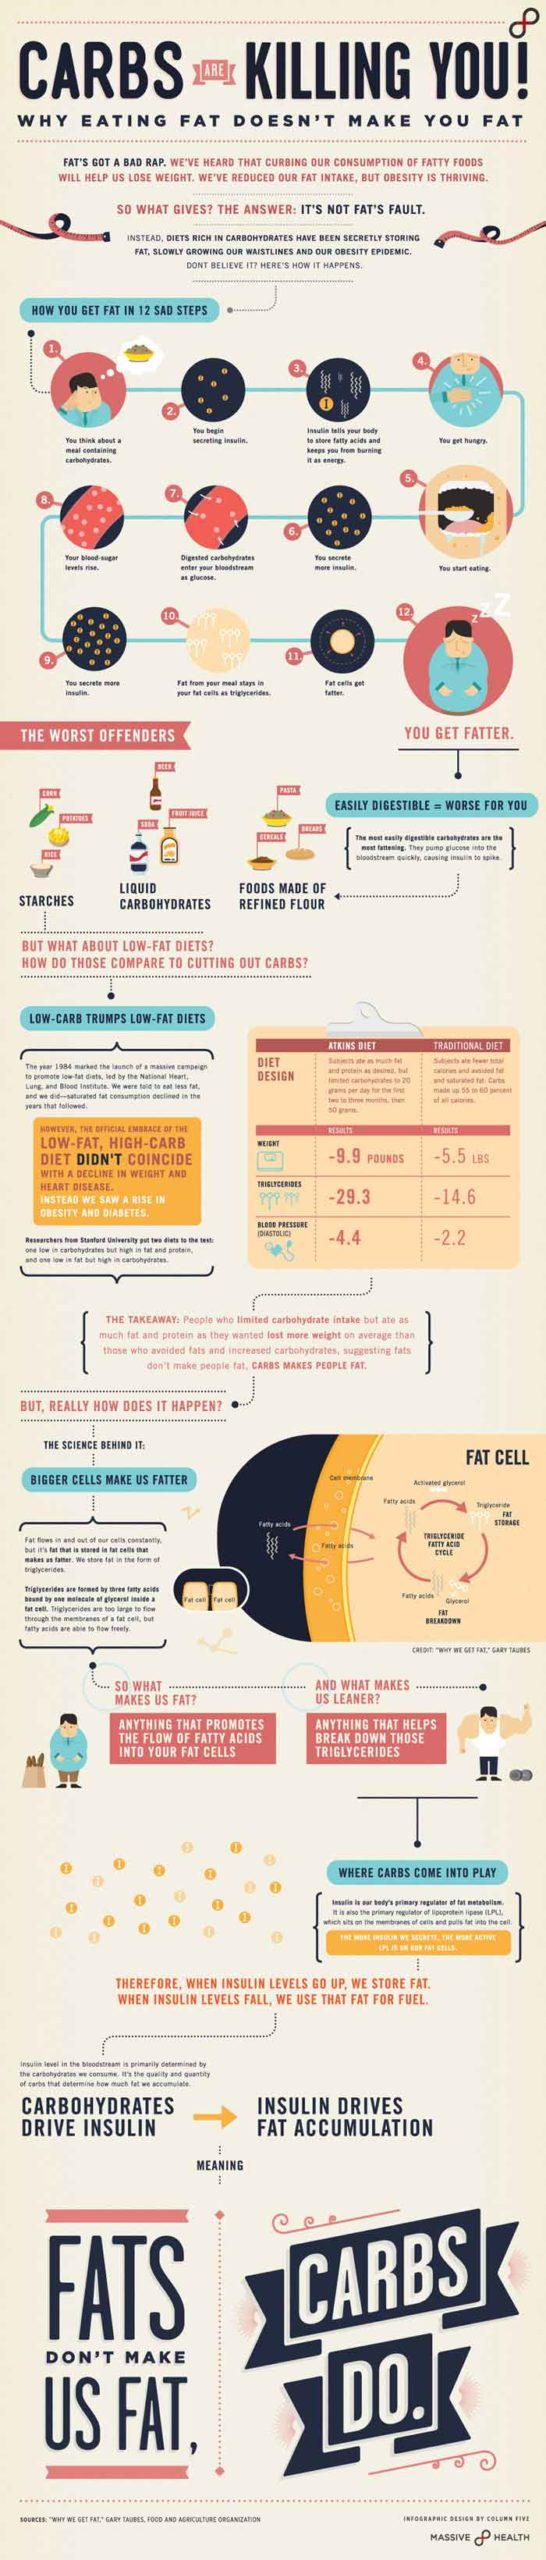 best infographic examples fig 17 carbs are killing you final